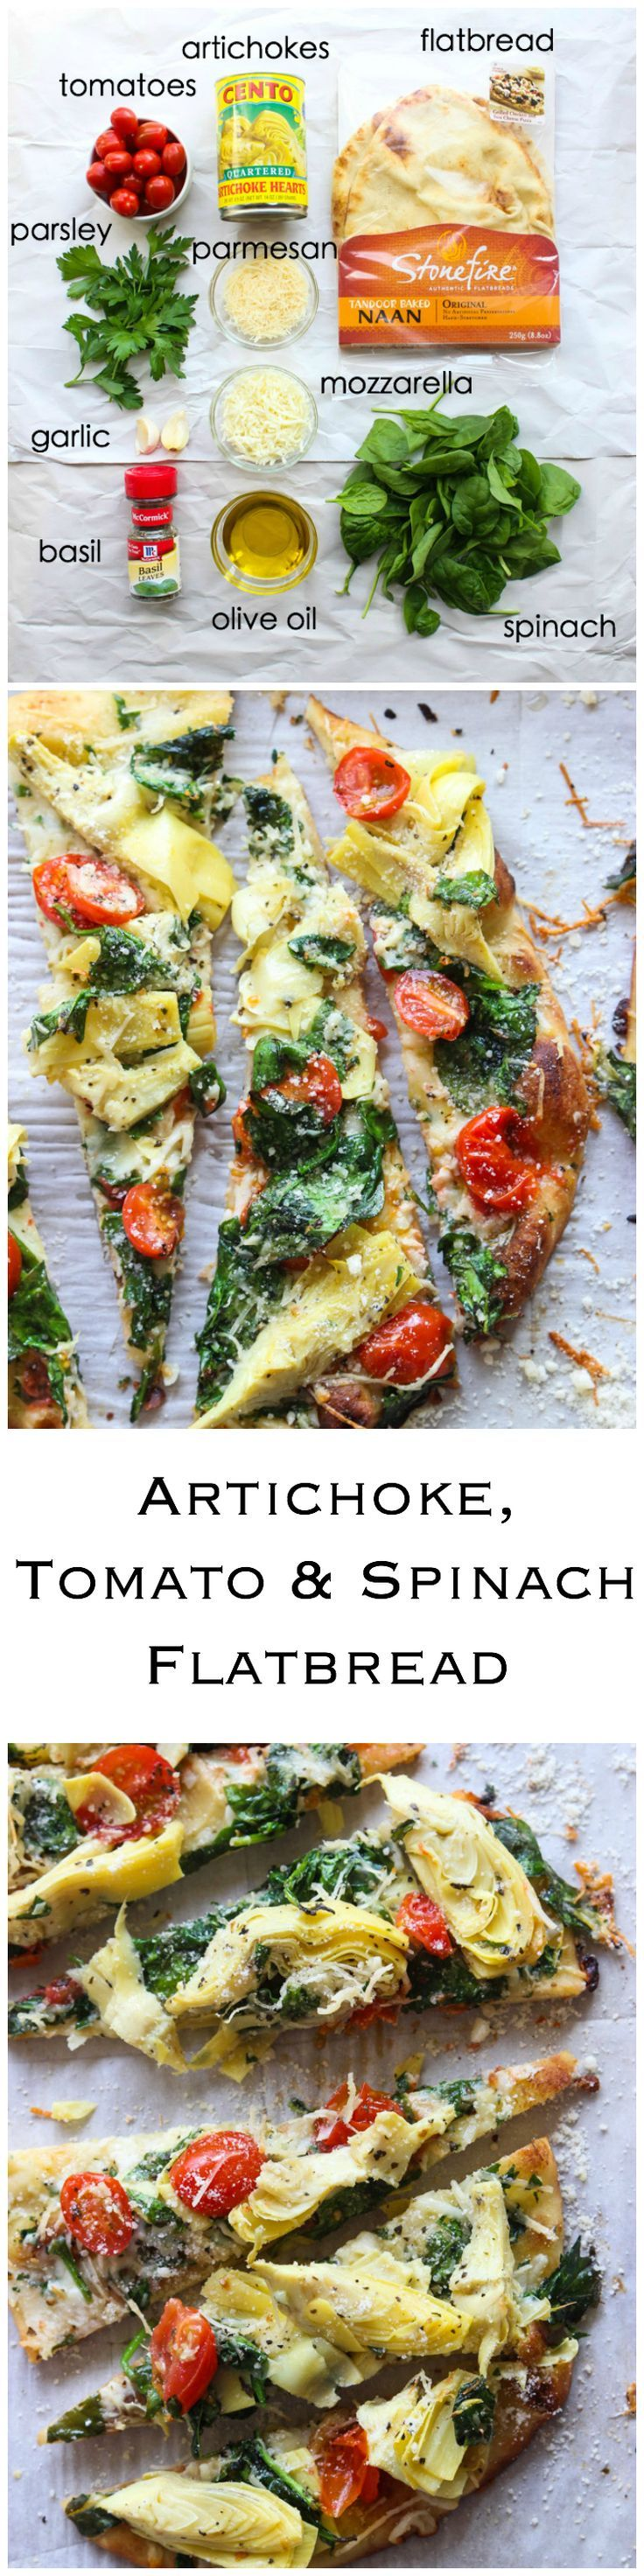 Artichoke Tomato and Spinach Flatbread - delicious and easy appetizer that is loaded with artichokes, tomatoes, and spinach. Serve this for holiday or football parties | http://littlebroken.com /littlebroken/